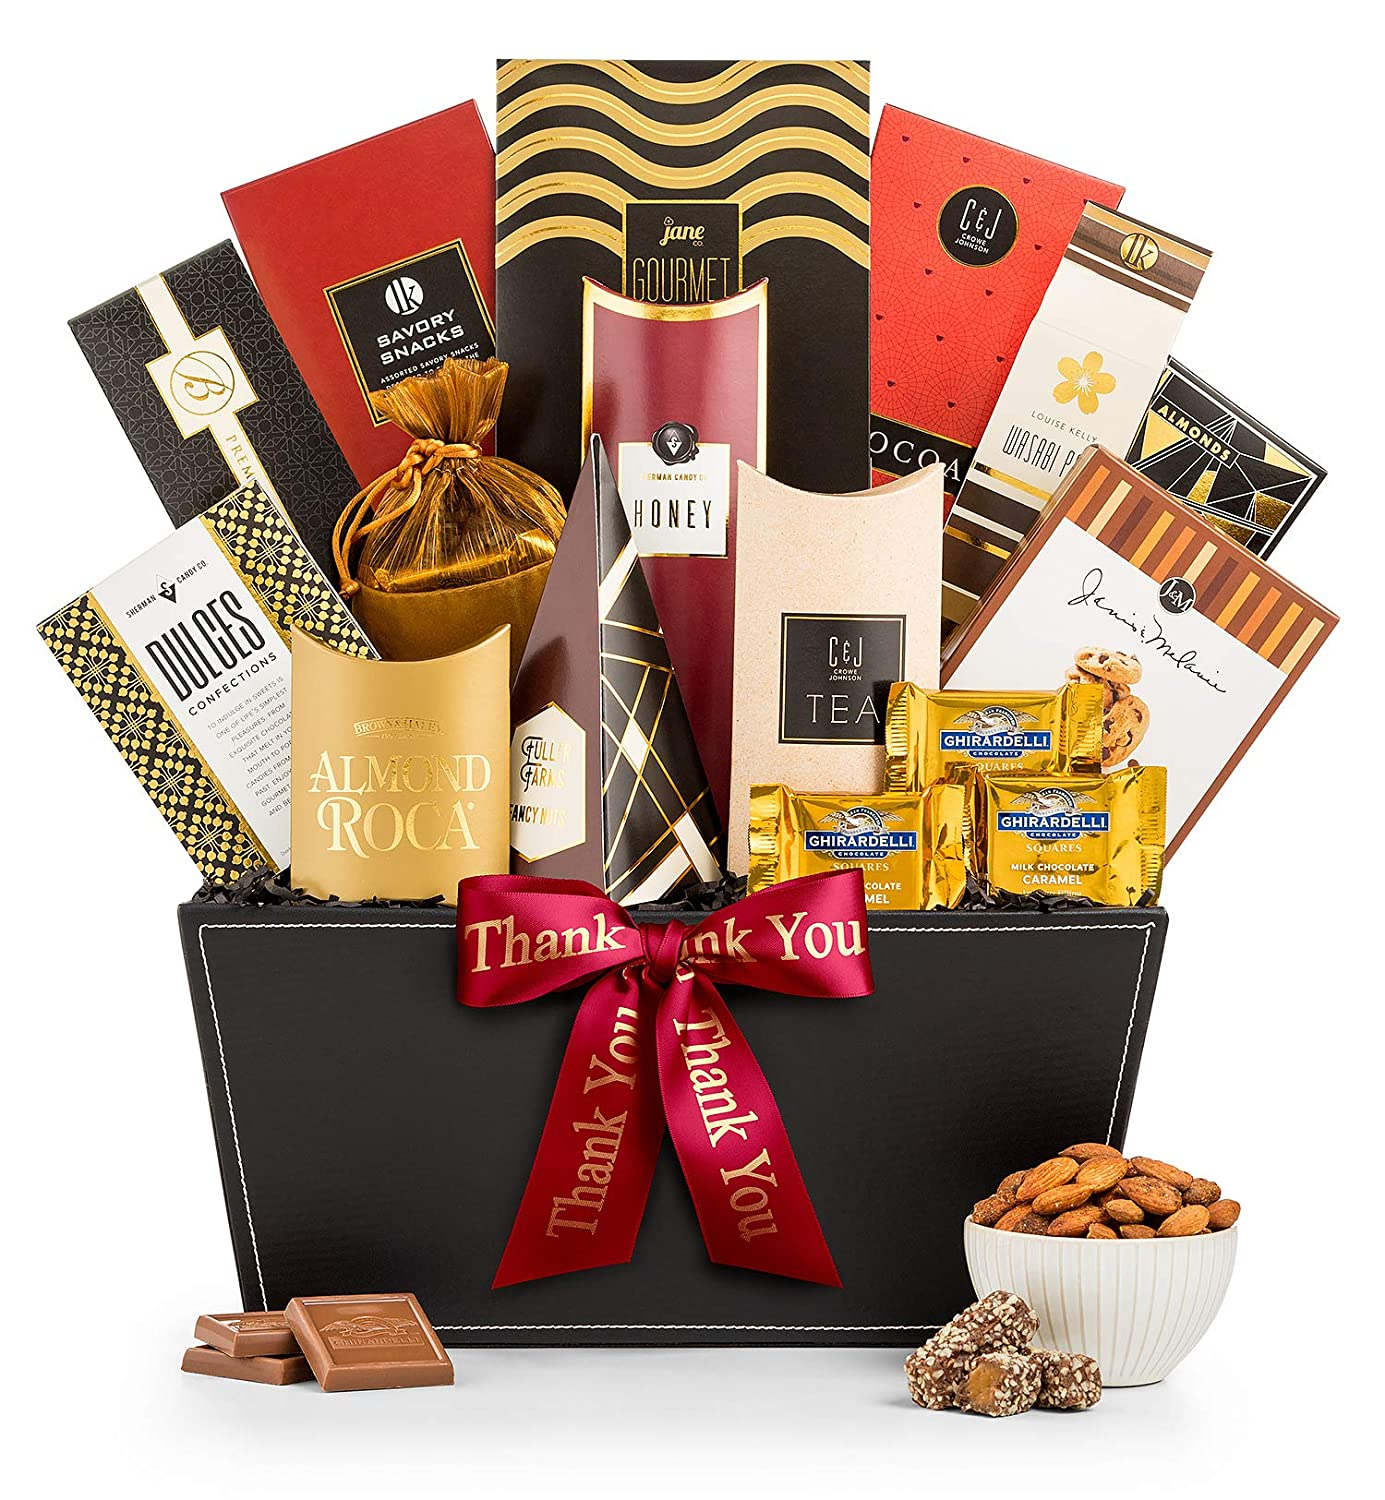 GiftTree Broadway Gourmet Thank You Gift Basket | GiftTree Broadway Gourmet Gift Basket | Almond Roca, Seasoned Nuts and Candies, Popcorn & More | Perfect Way to Show Your Appreciation